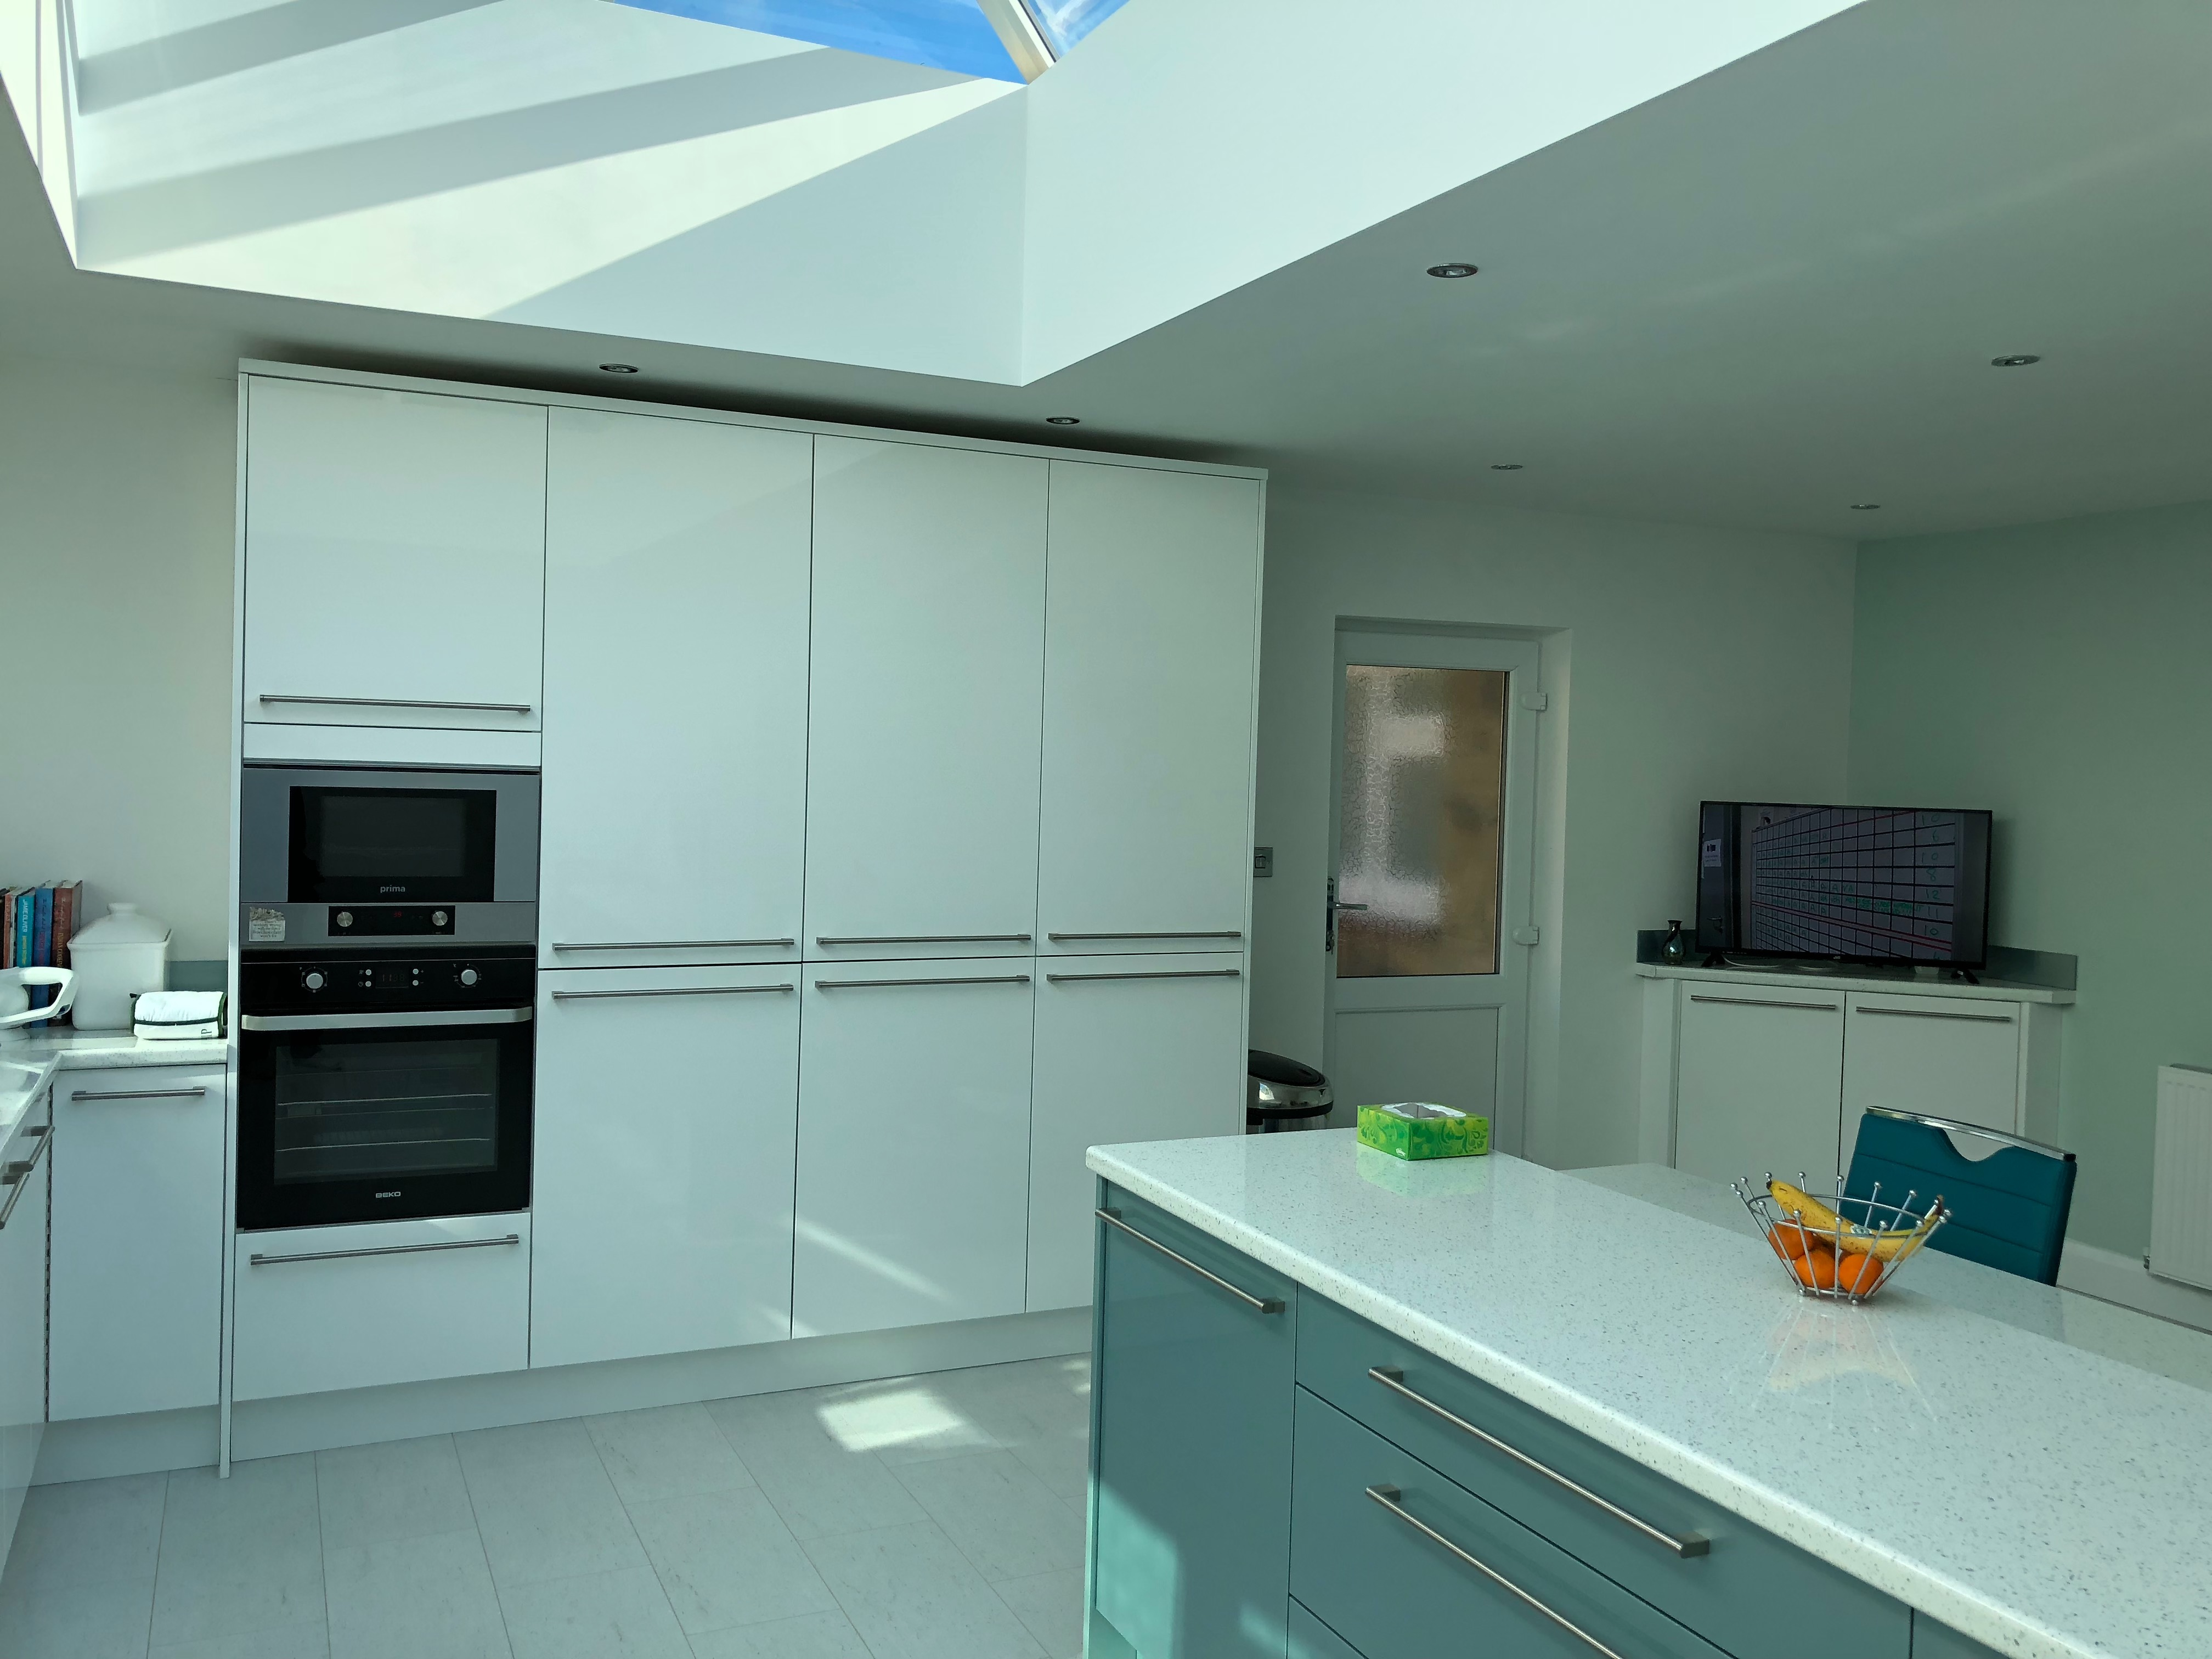 6. Stone Kitchen Extension